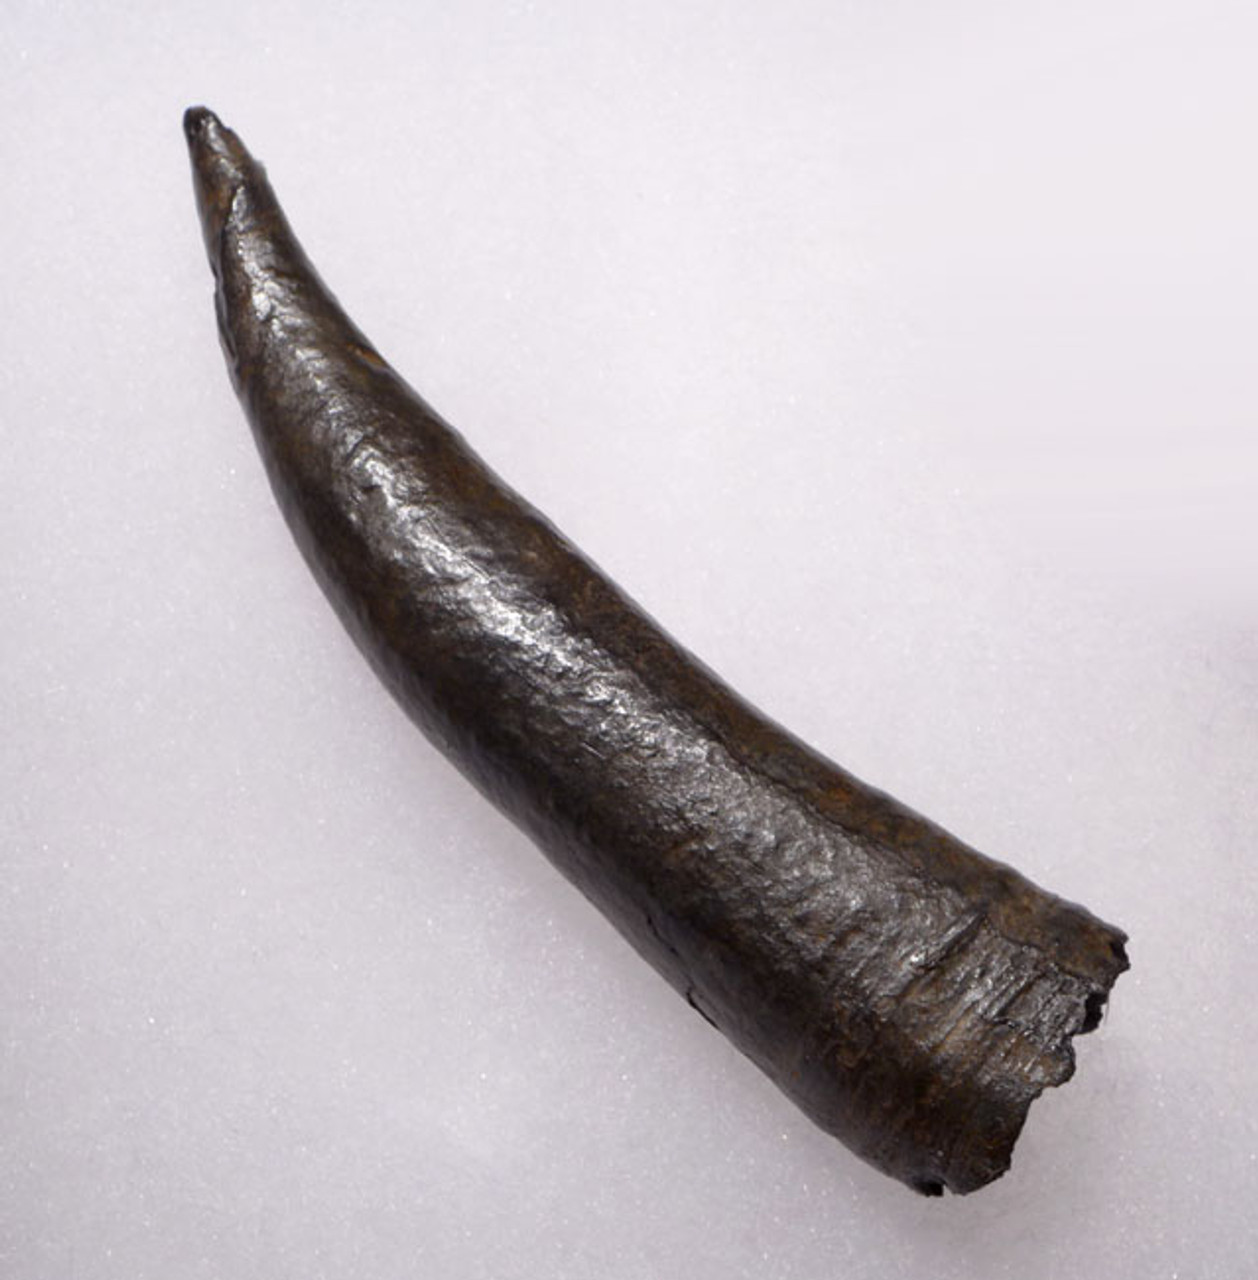 WH014 - INTACT AND COMPLETE FOSSIL ODONTOCETE WHALE TOOTH WITH SHARP TIP AND HOLLOW ROOT